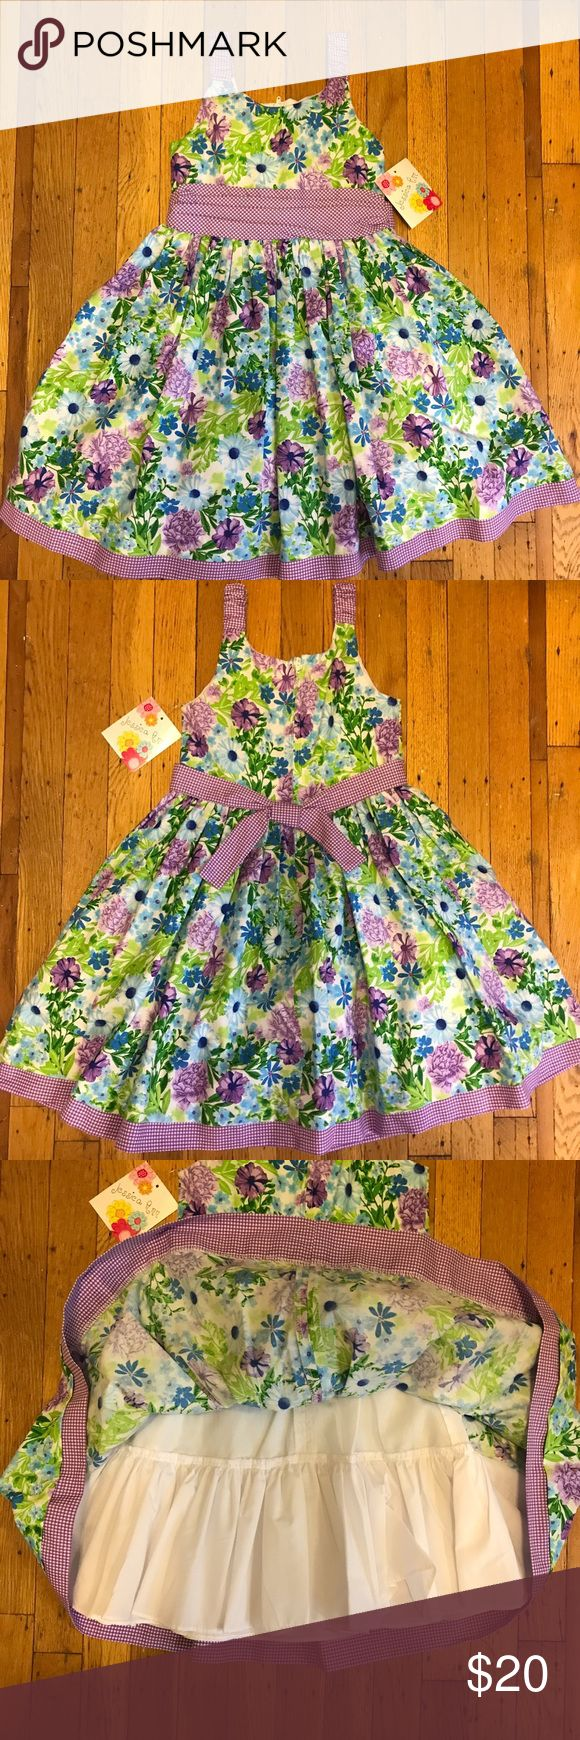 """NWT girls floral print spring dress size 6 Brand new with tags floral print girls dress. Purple sash with bow at the back. Zipper at back. Brand is Jessica Ann. Size 6. Lined skirt gives it some extra """"poof"""". Perfect for summer or spring. Jessica Ann Dresses Casual"""